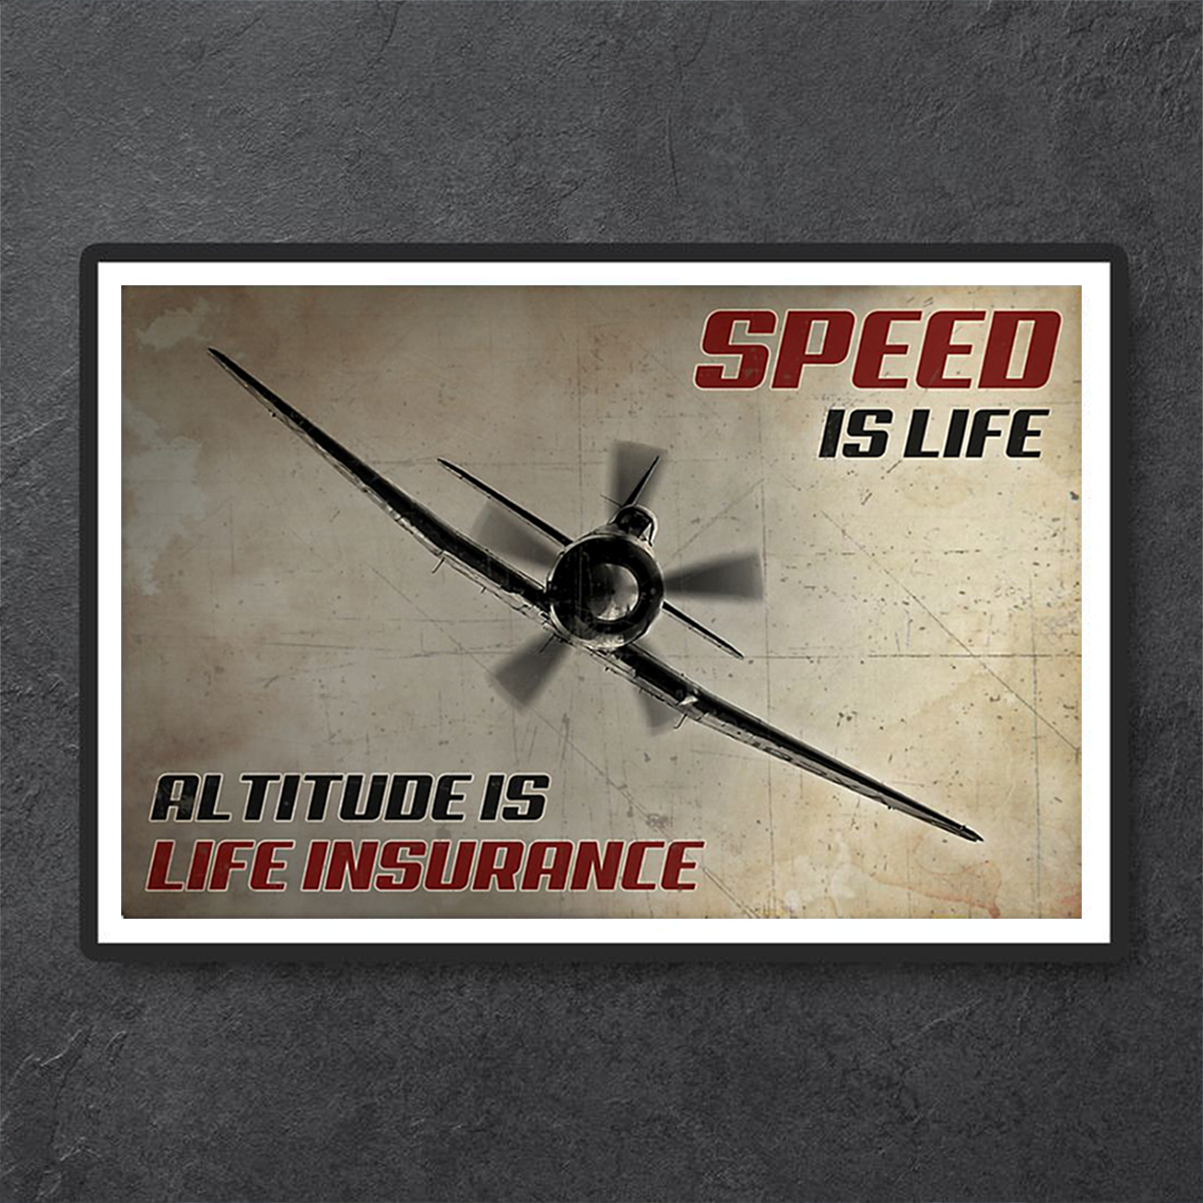 Pilot speed is life altitude is life insurance poster A1